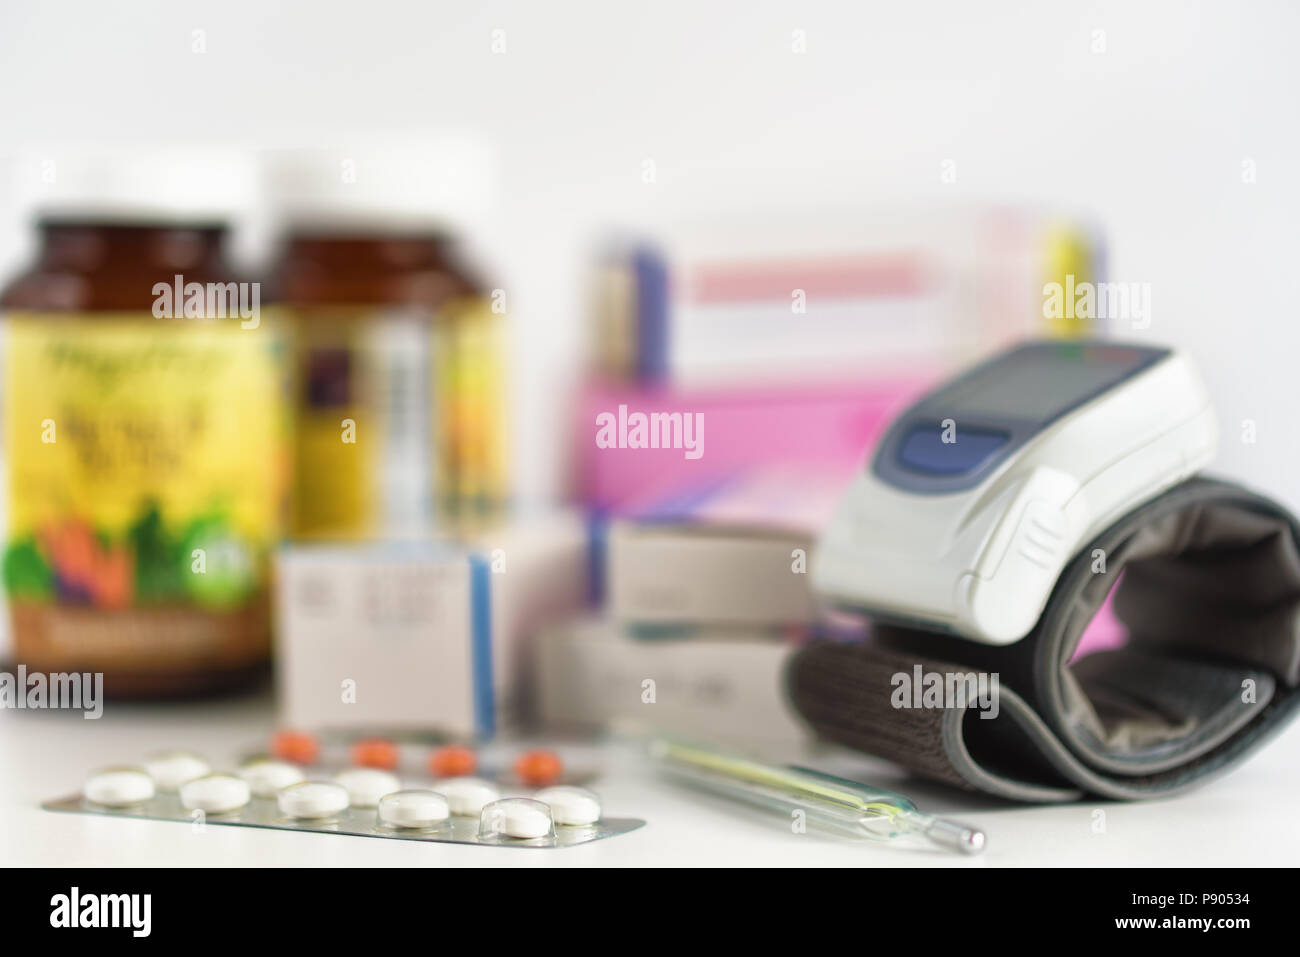 Medicine on the table. Pills and tablets. Medical concept - Stock Image